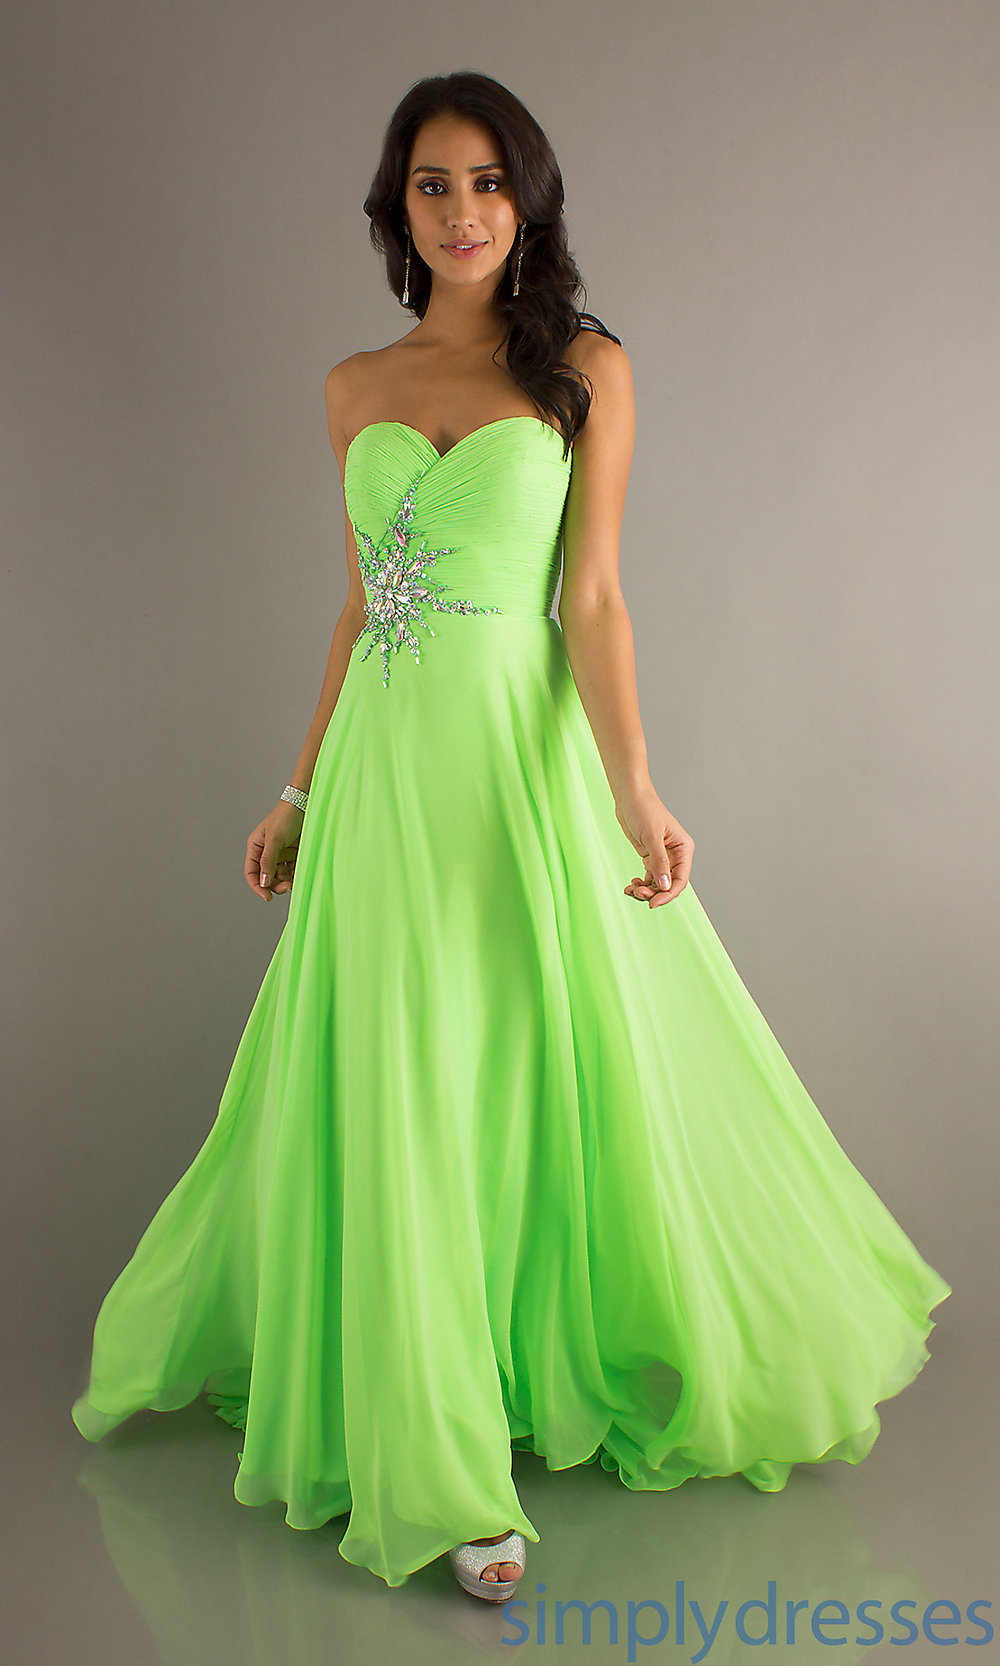 Green Formal Dresses Cheap - 20 Great Ideas